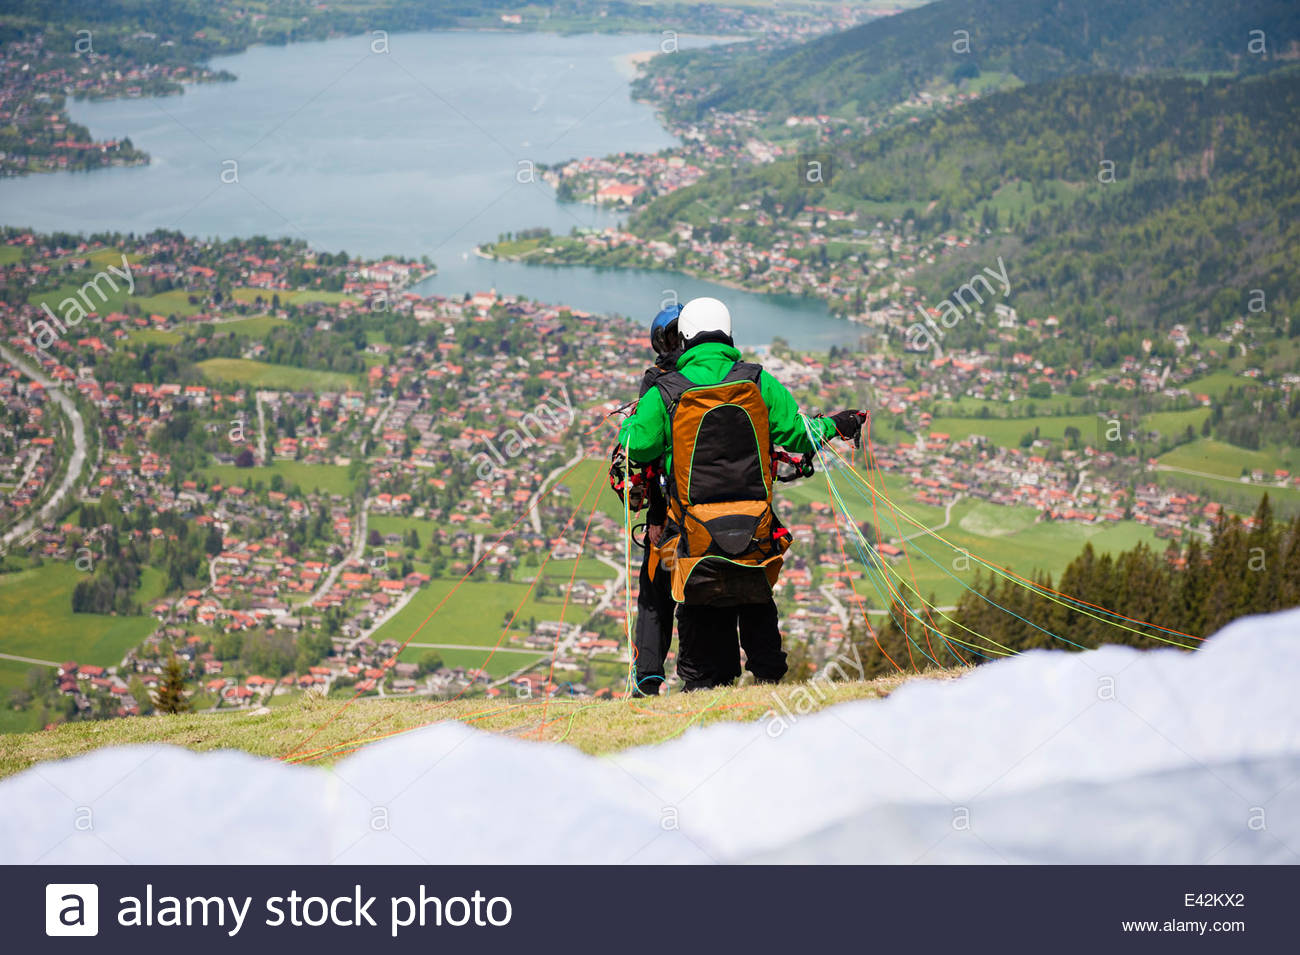 Couple paragliding, Wallberg, Tegernsee, Bavaria, Germany - Stock Image